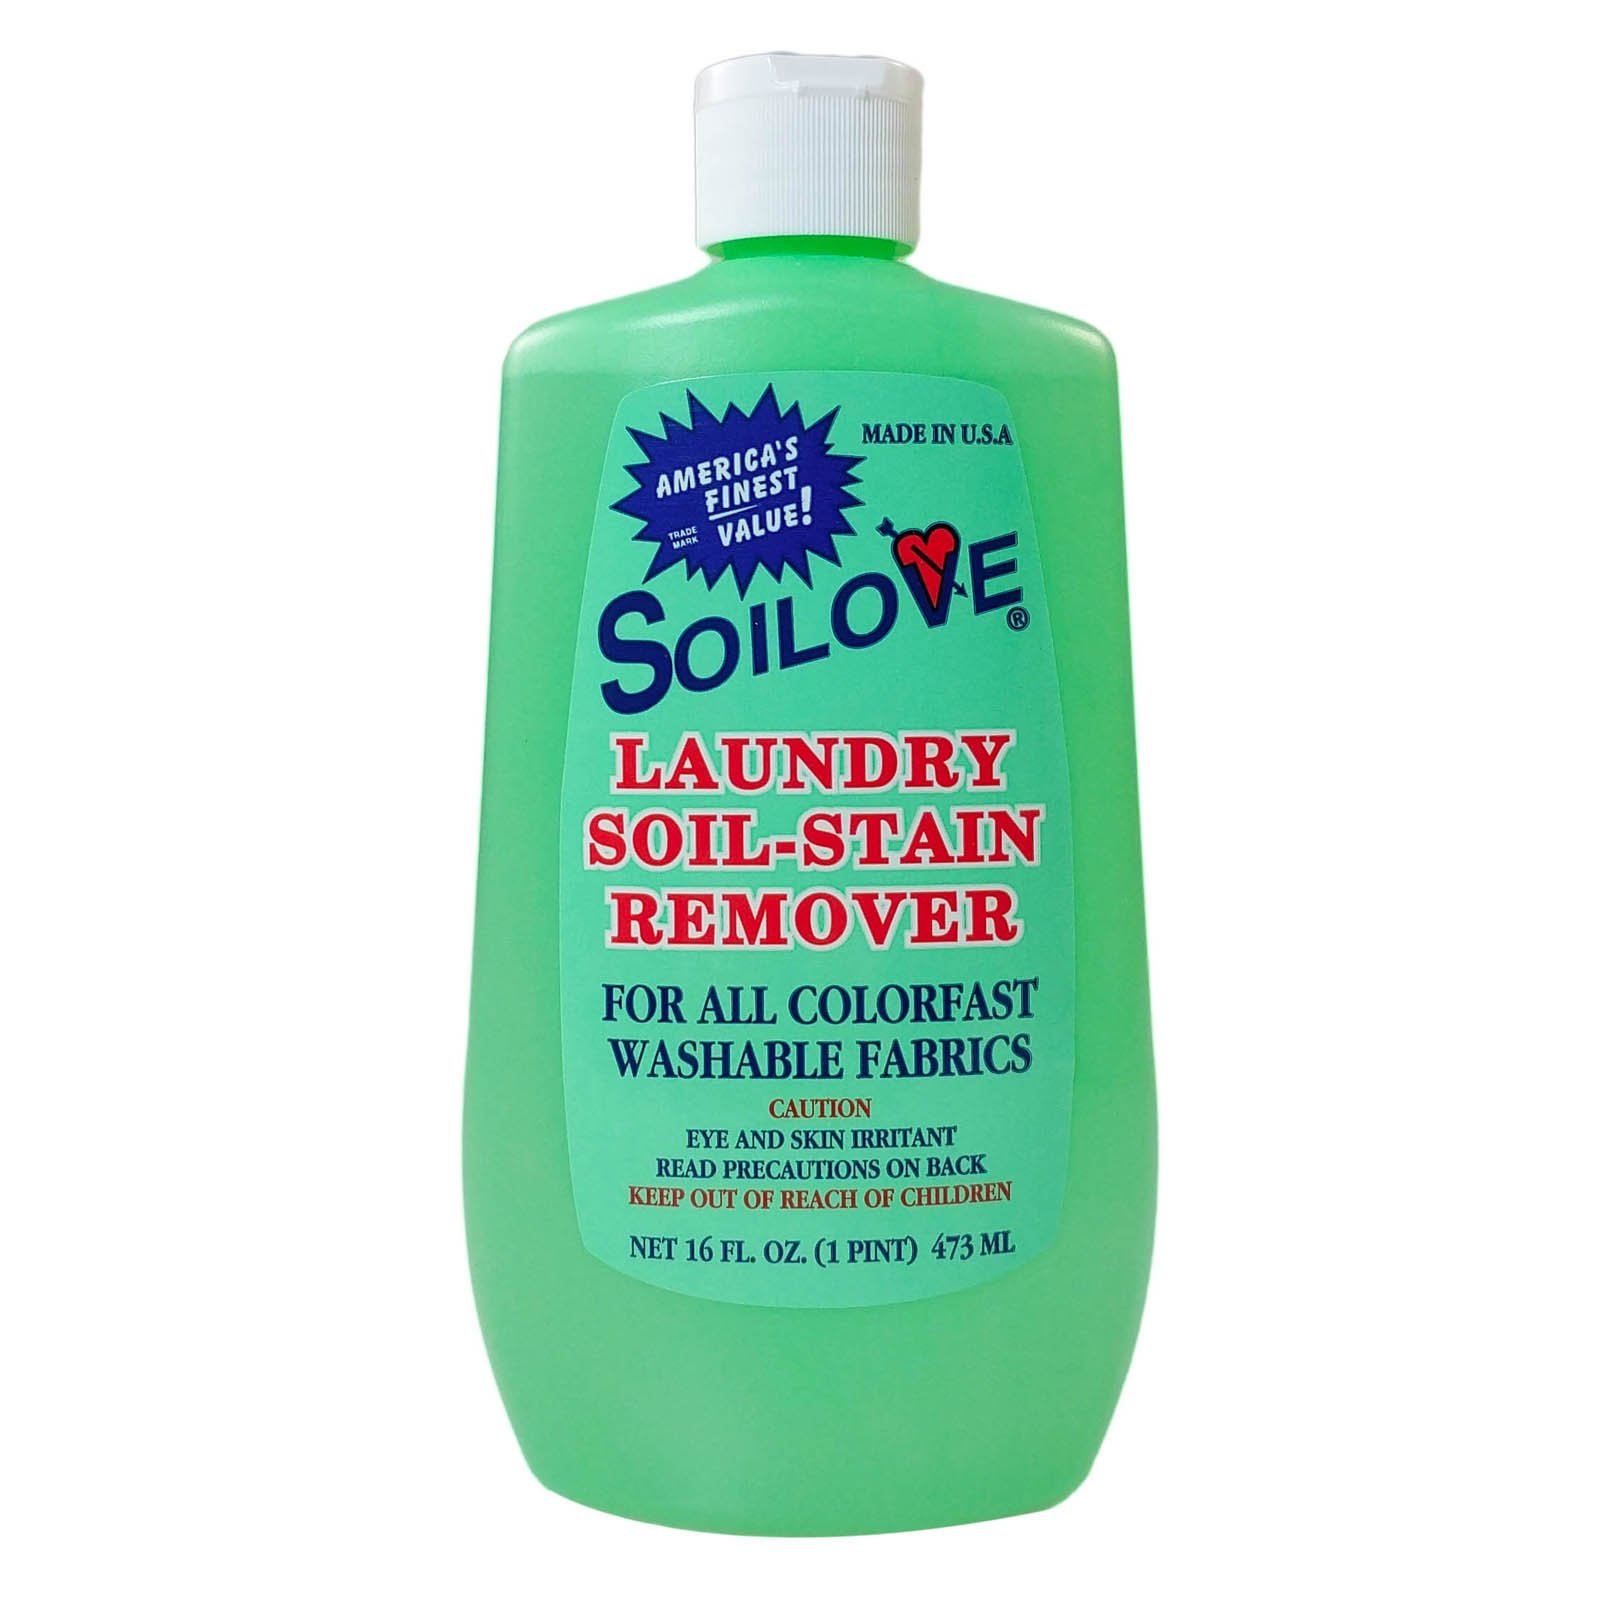 Universal Home Soilove 16oz Laundry Soil and Stain Remover